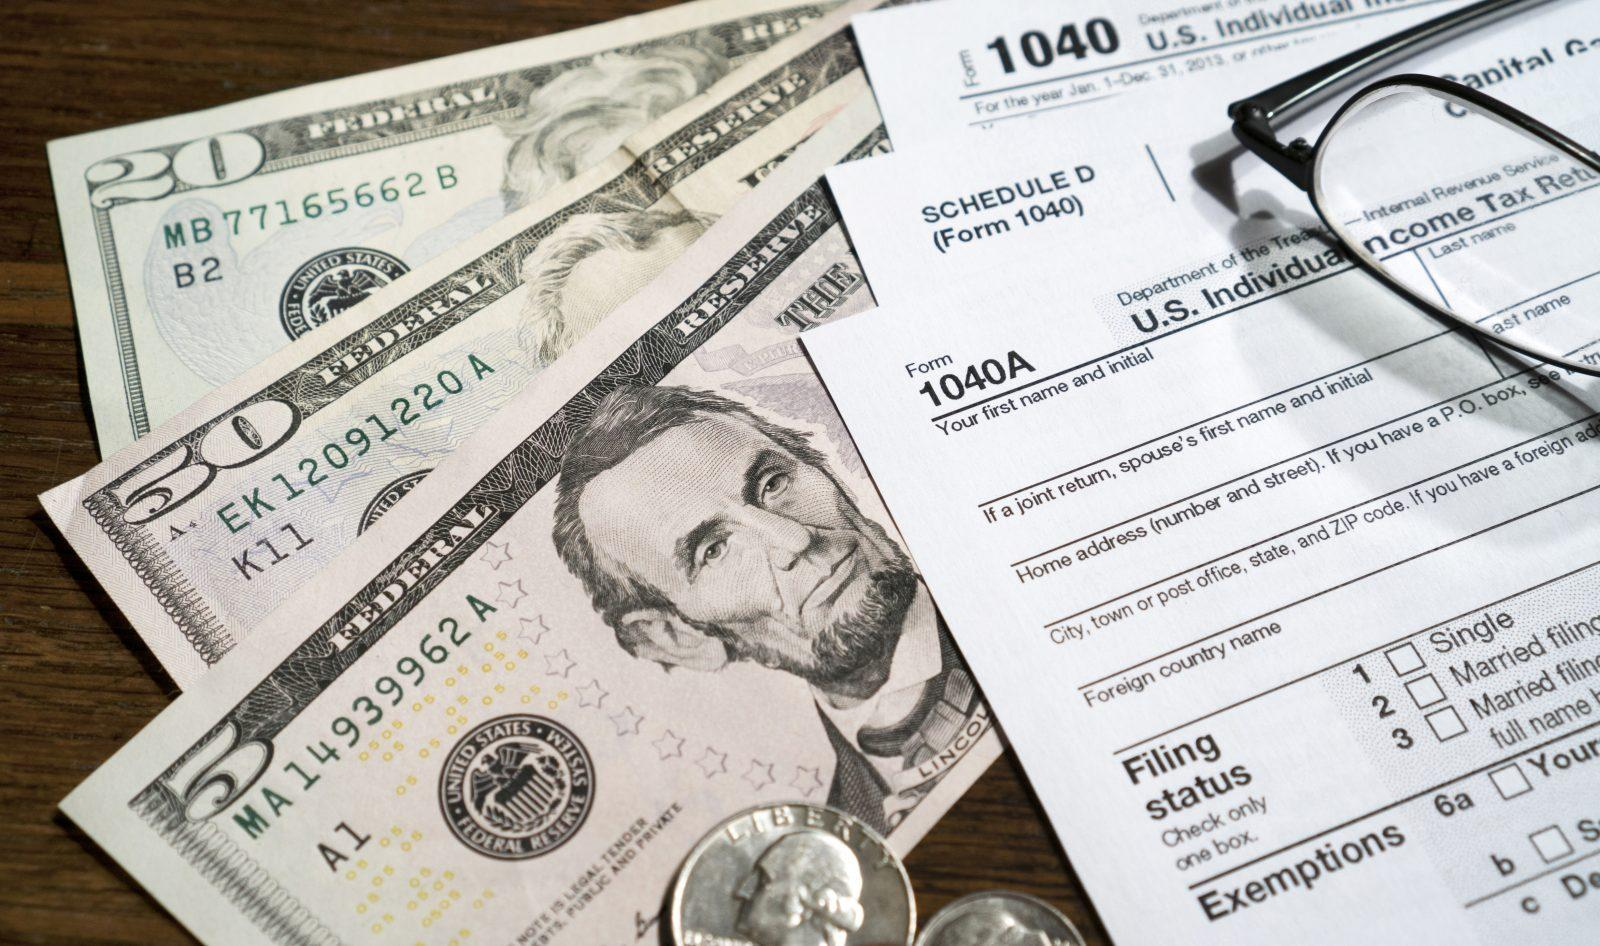 IRS warns of new scam around wrong tax refund deposits